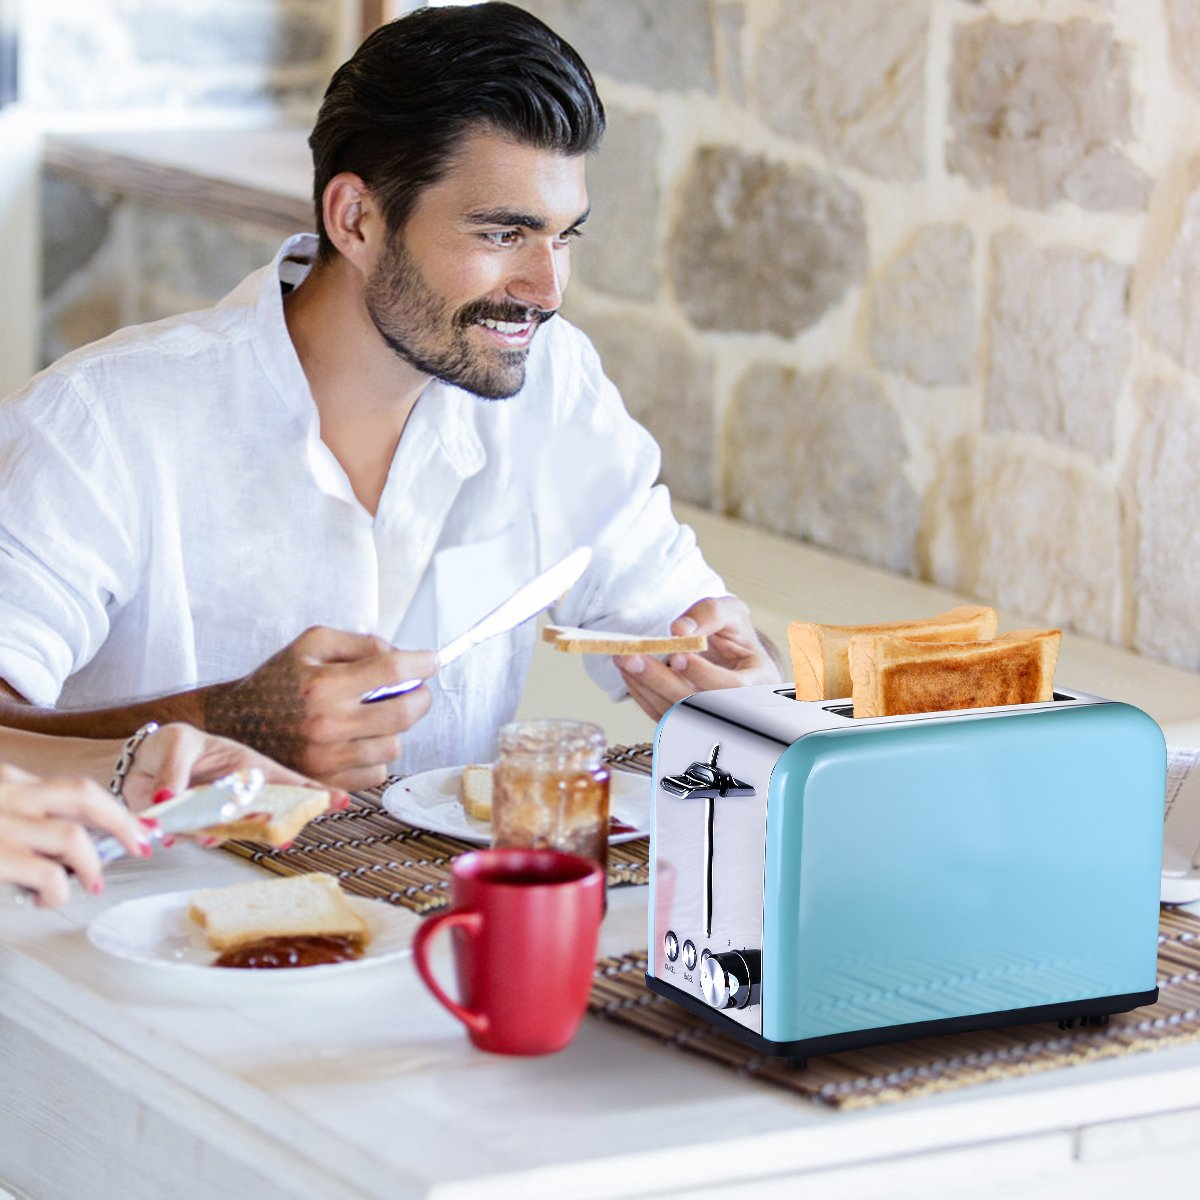 Toaster 2 Slice, Retro Small Toaster with Bagel, Cancel, Defrost Function, Extra Wide Slot Compact Stainless Steel Toasters for Bread Waffles, Blue by Keemo (Image #7)